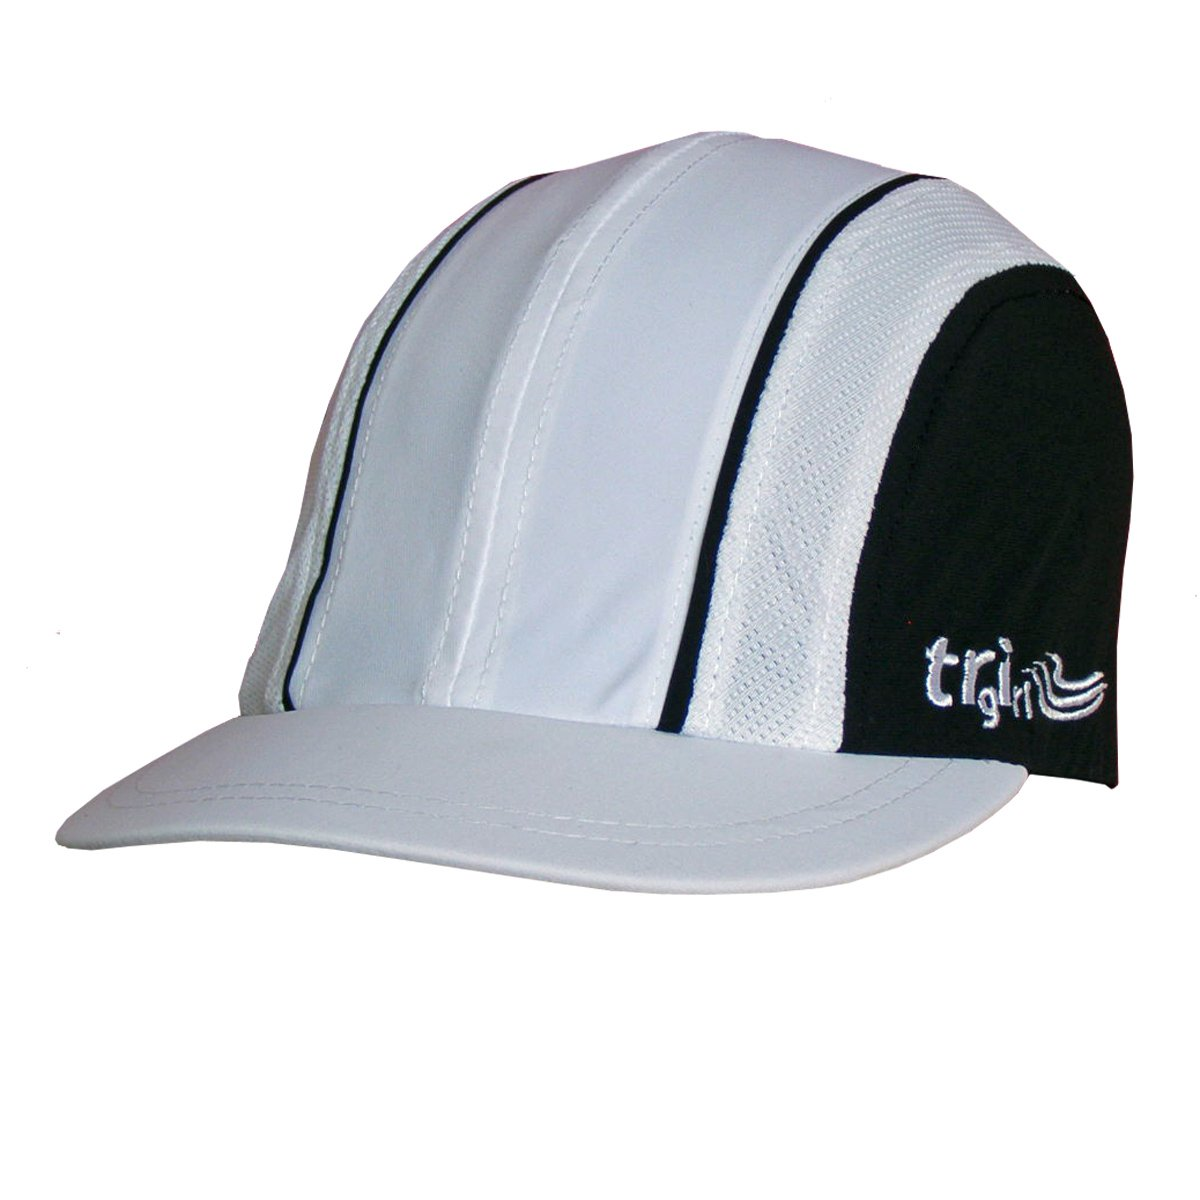 Trigirl Women's Technical Running Cap In Lycra Stretch - This Season's Colours - Lime Zest, Coral Reef, Ultramarine, White